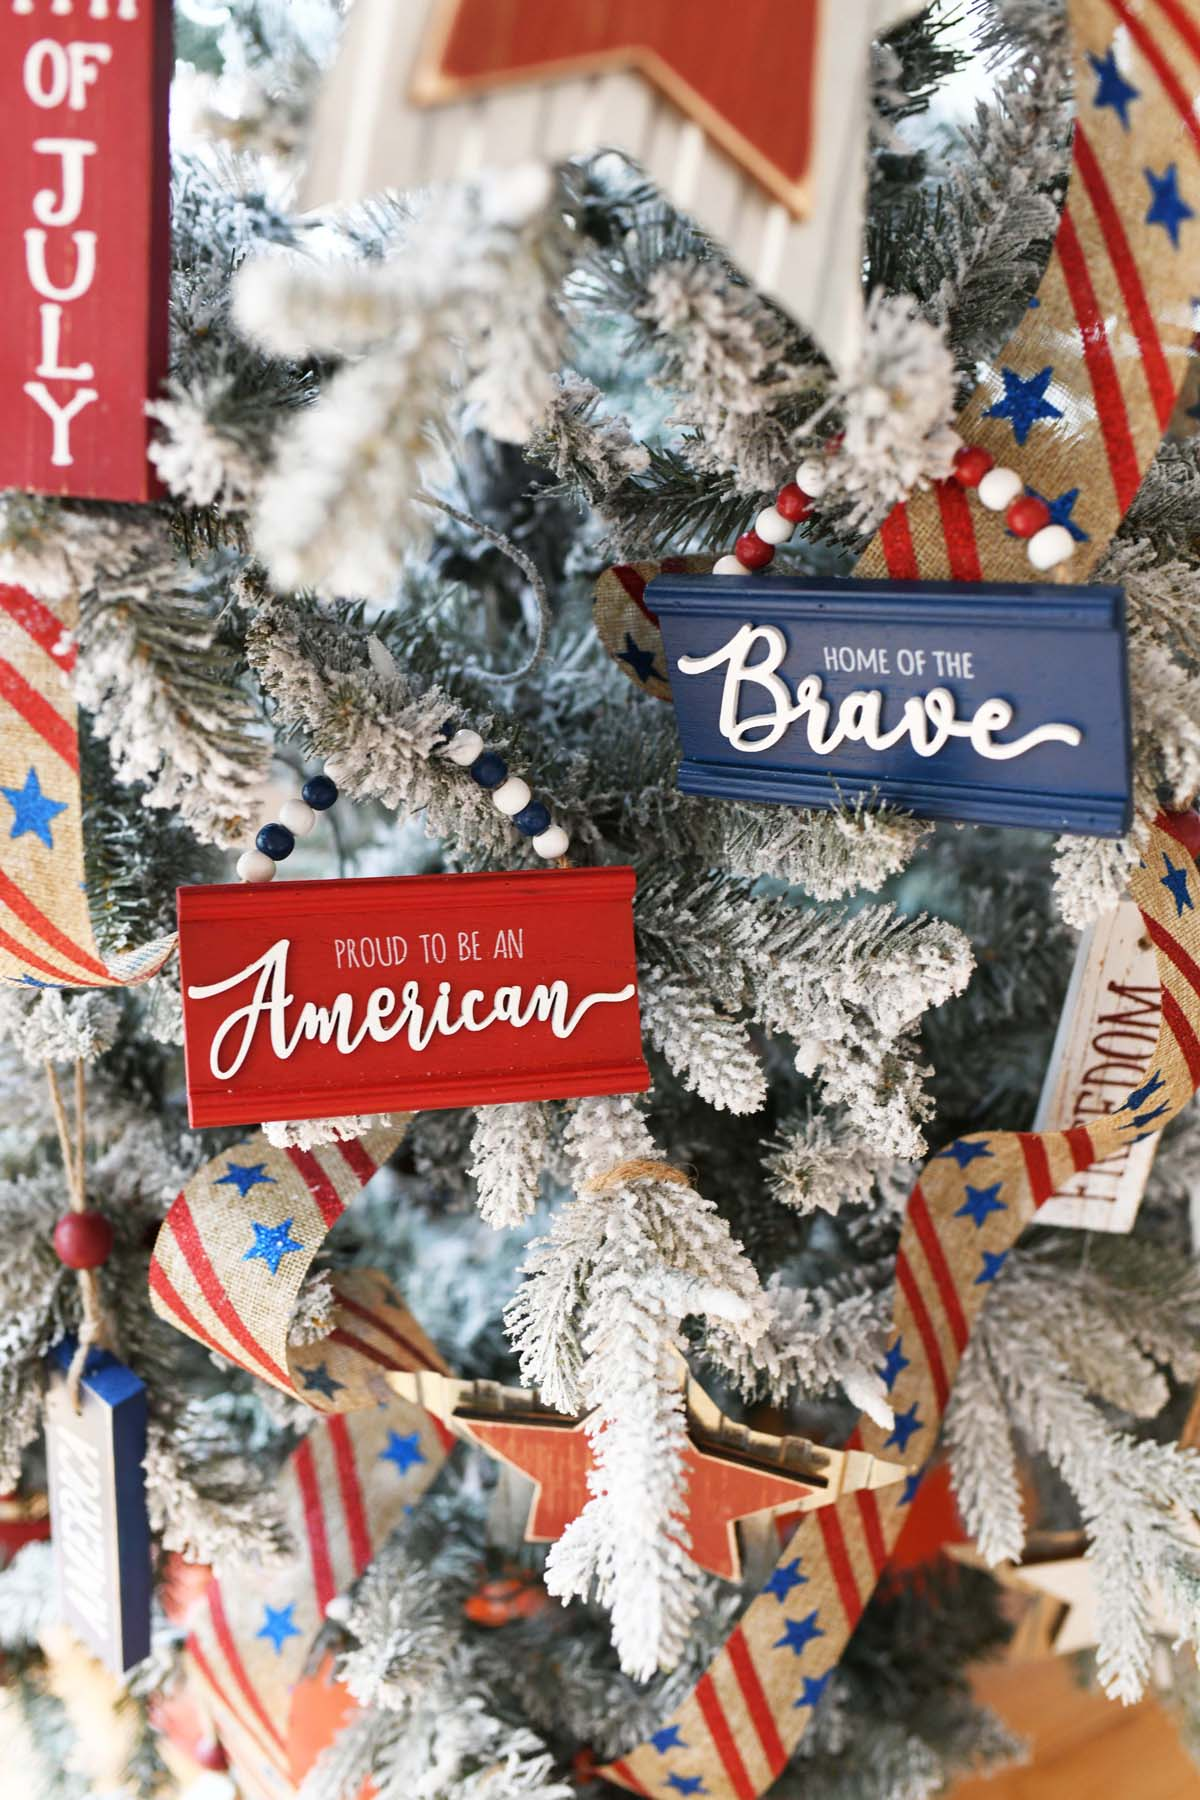 Red, white, and blue Americana Ornaments on a Christmas tree.